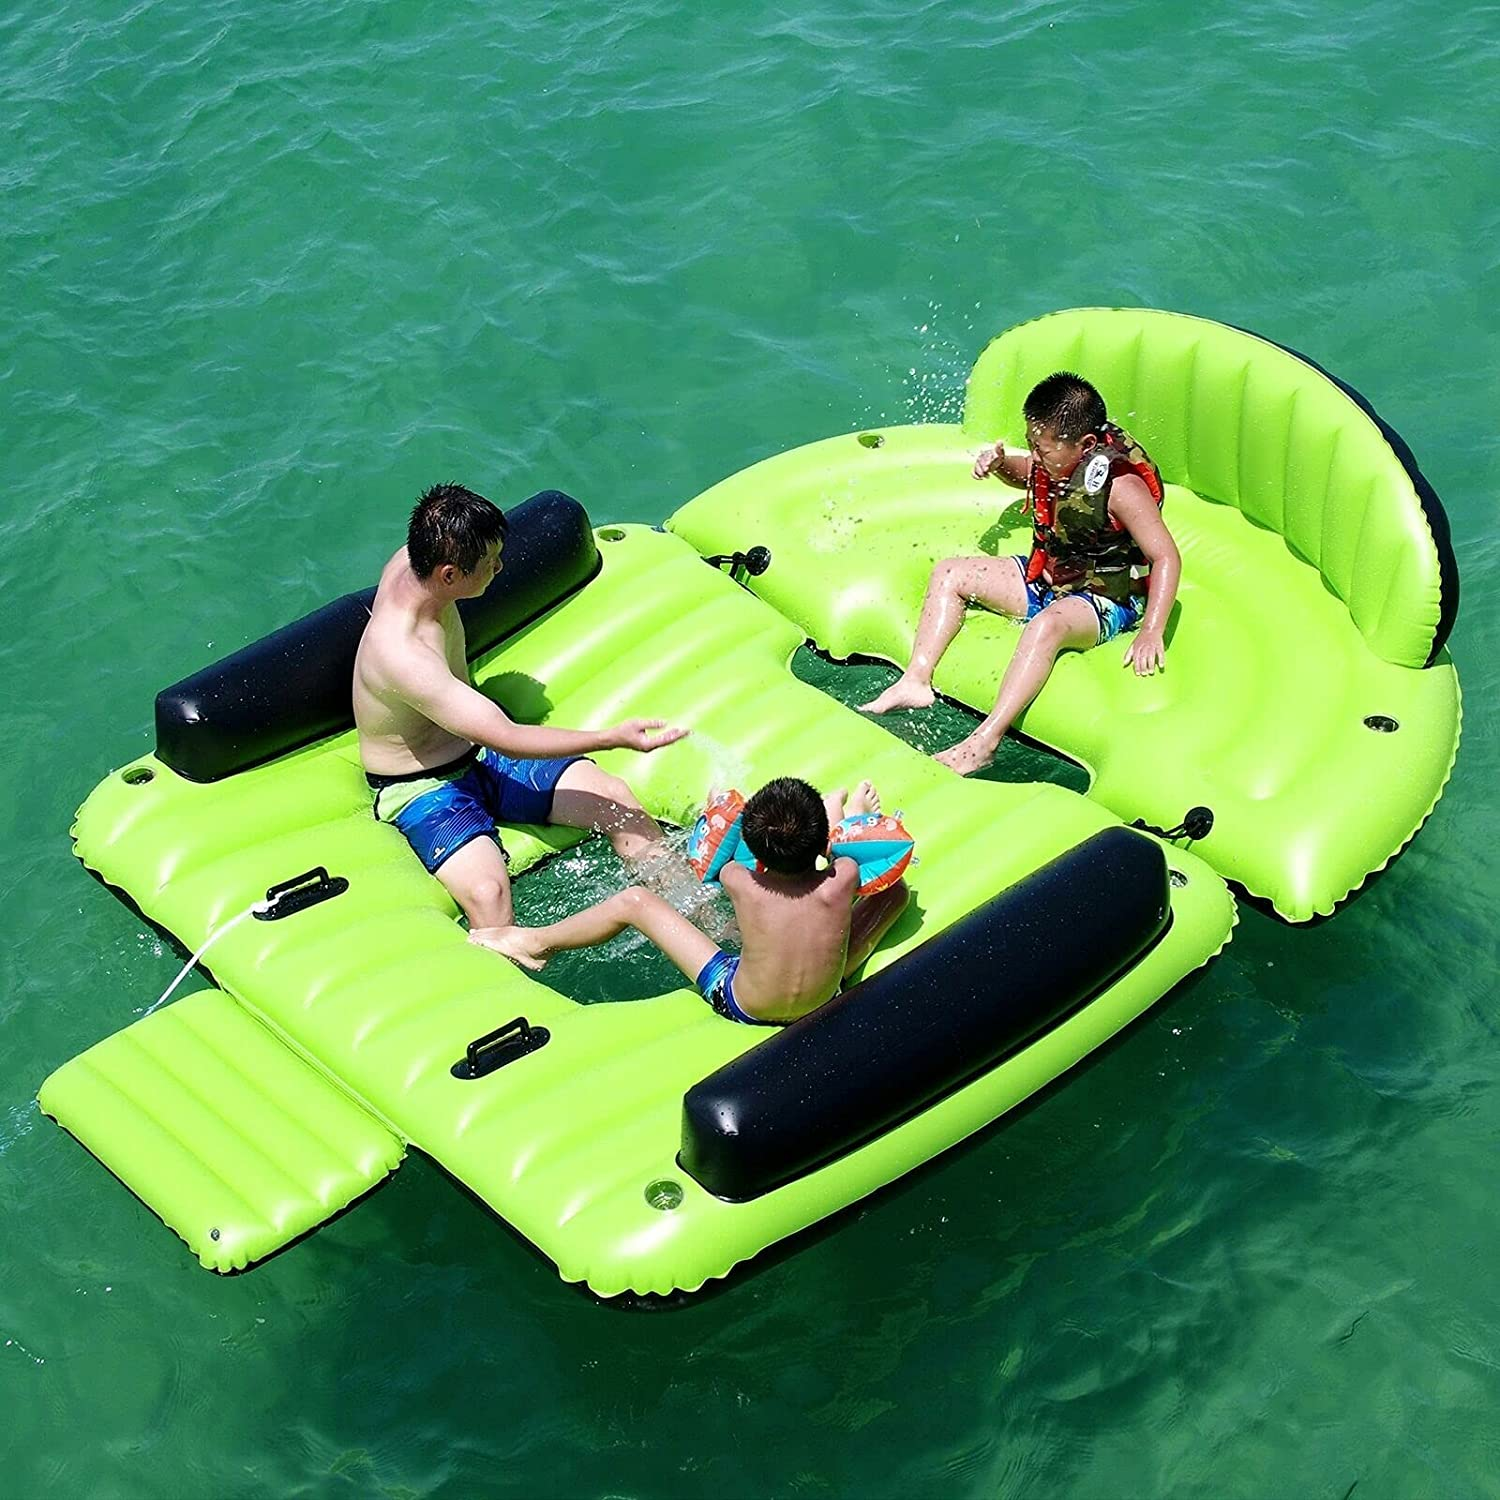 HUIJK Floating Island Inflatable with 6 PRS Max 53% OFF discount Raft